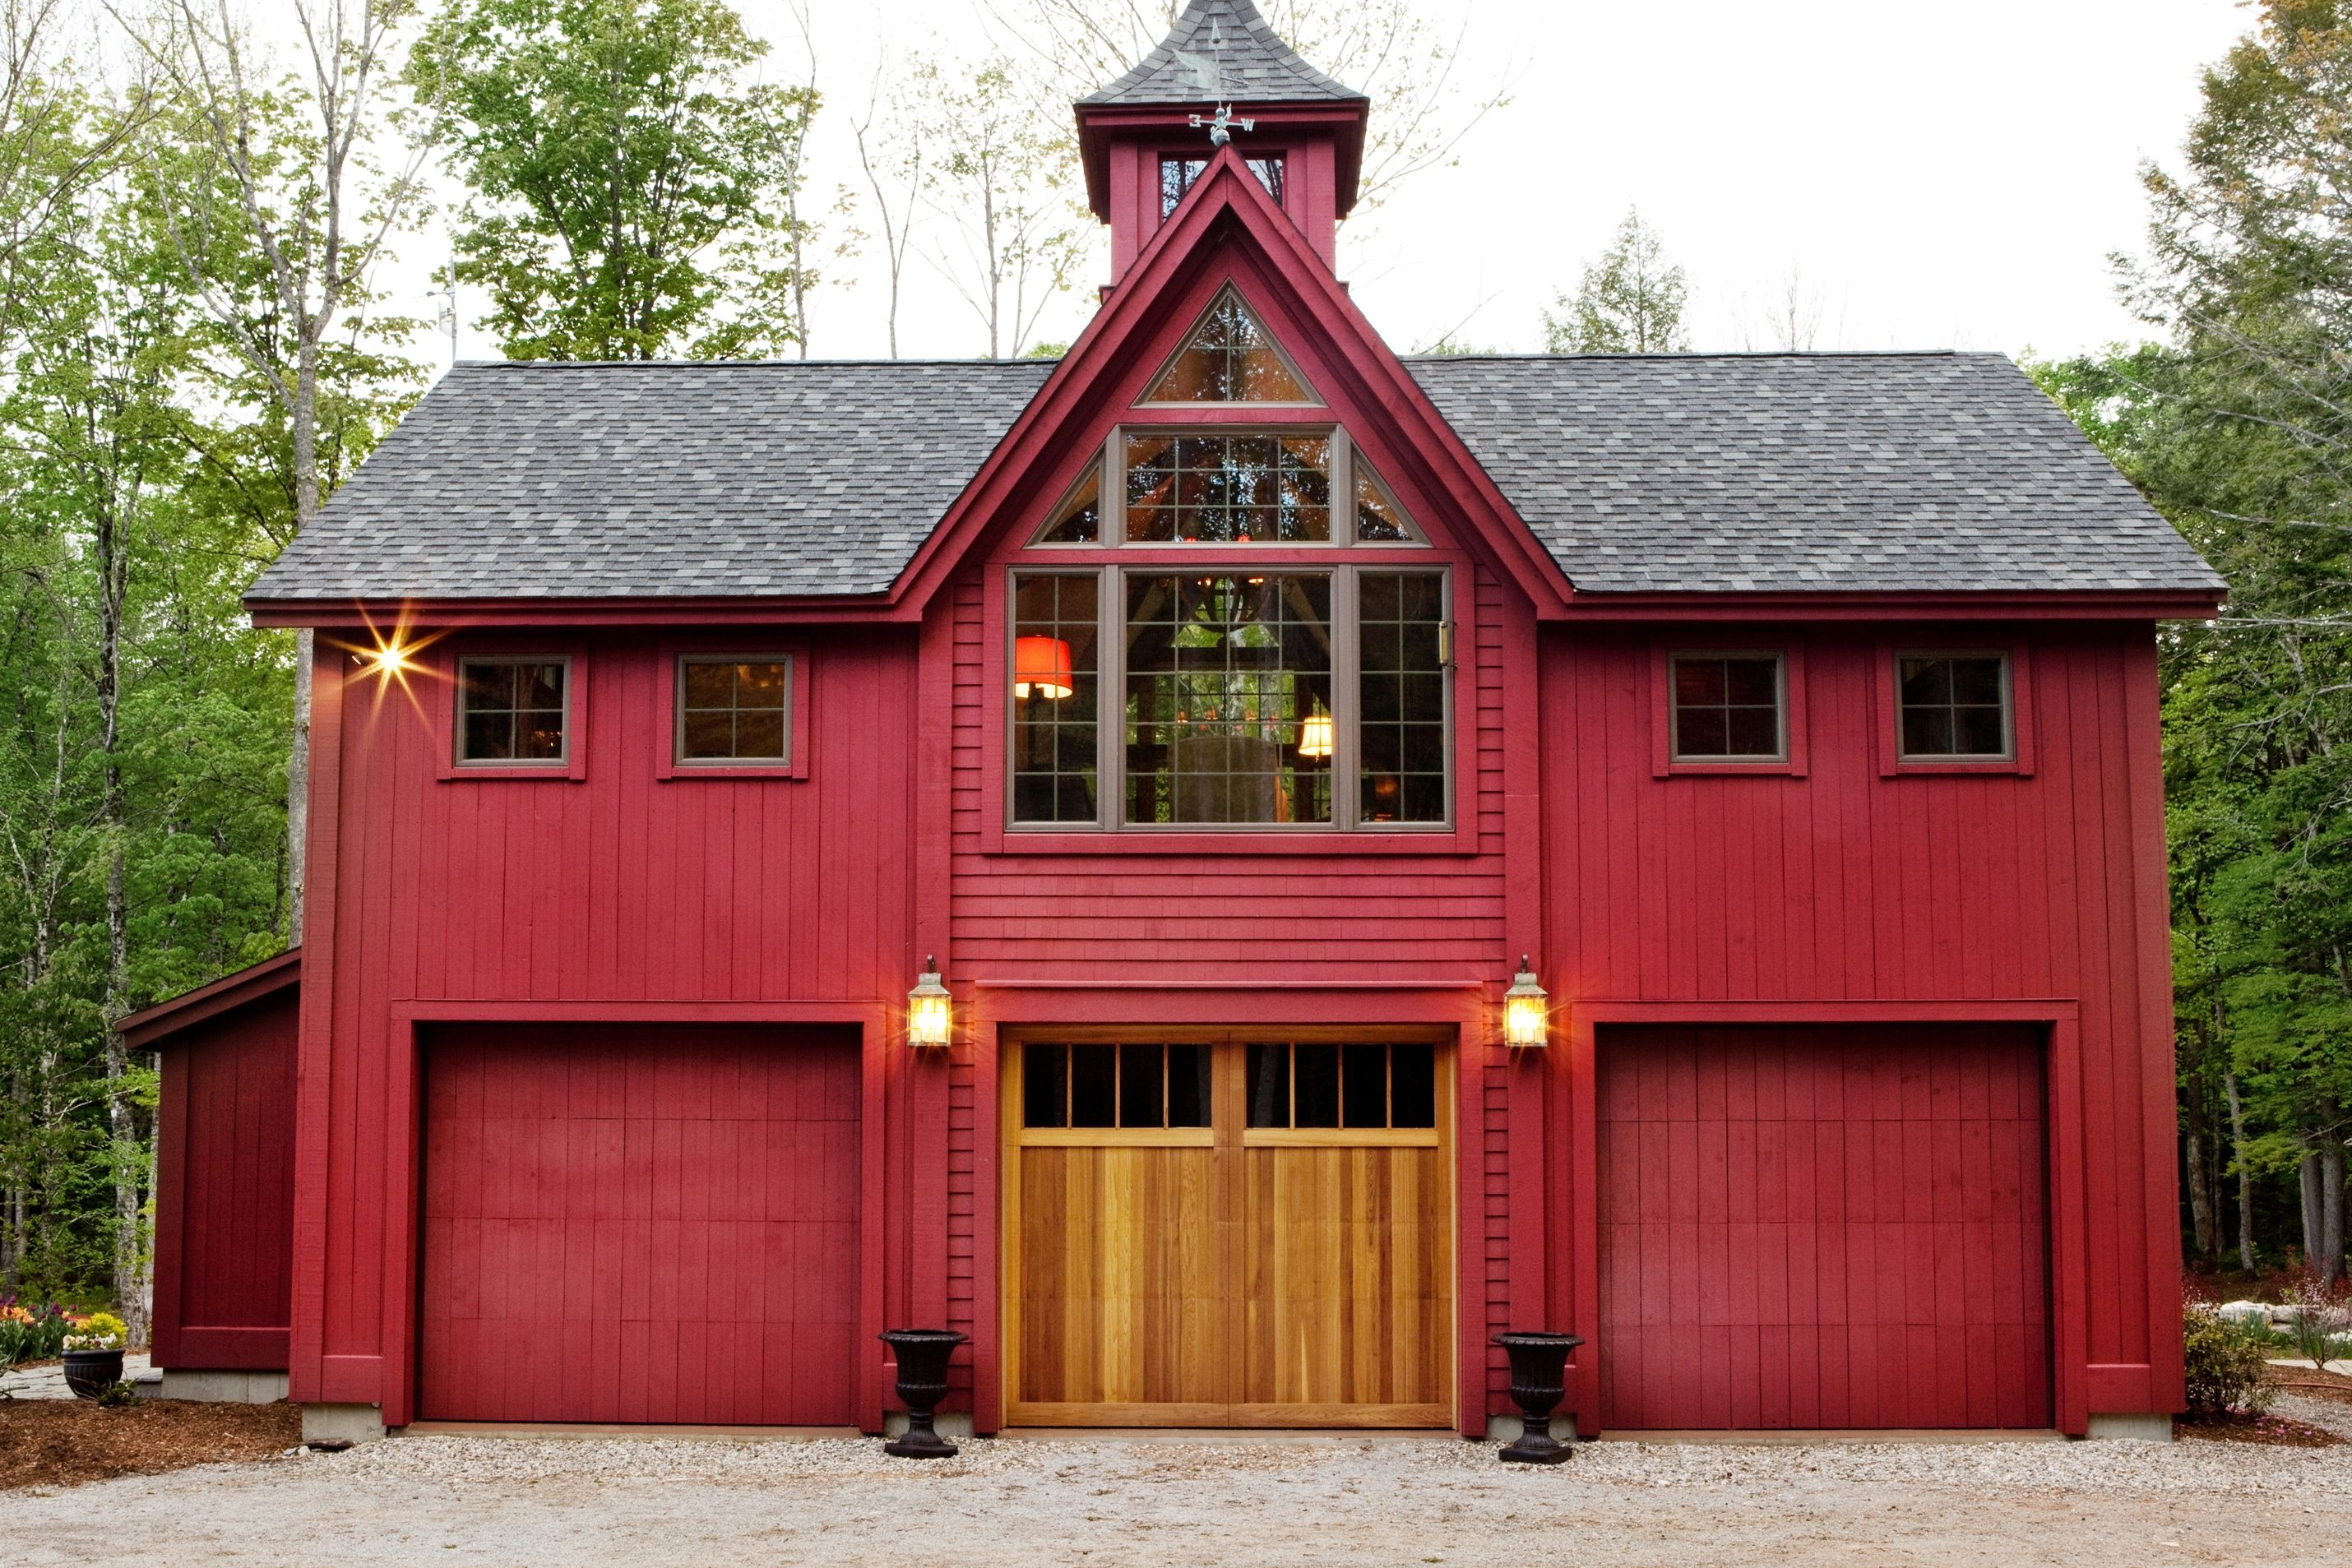 Carriage house by yankee barn homes home timber frame for Carriage house homes